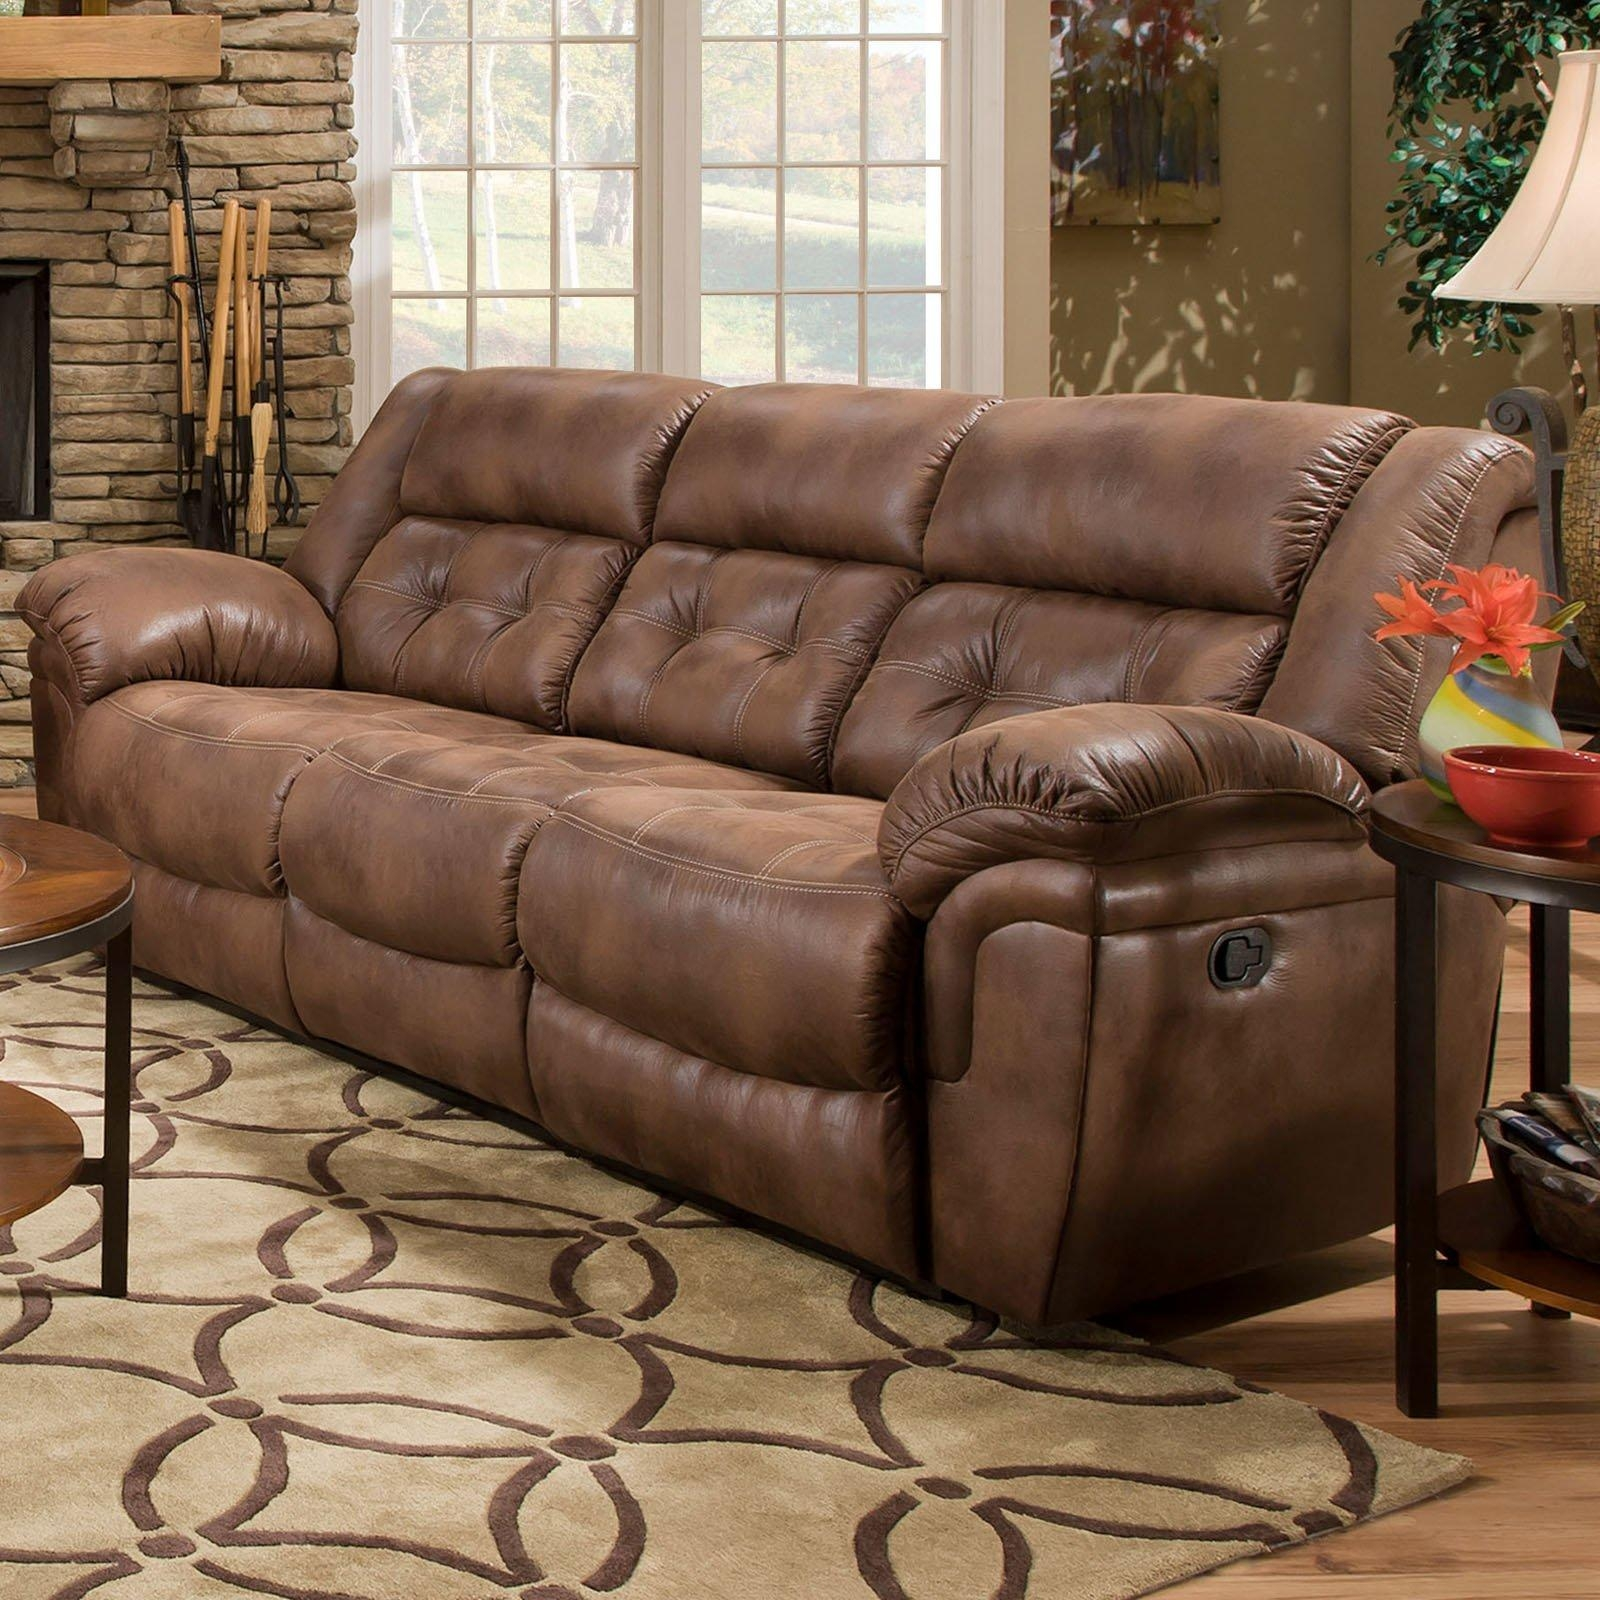 Simmons Upholstery Wisconsin Beautyrest Sofa – Chocolate | Hayneedle With Simmons Sofas (Image 14 of 20)